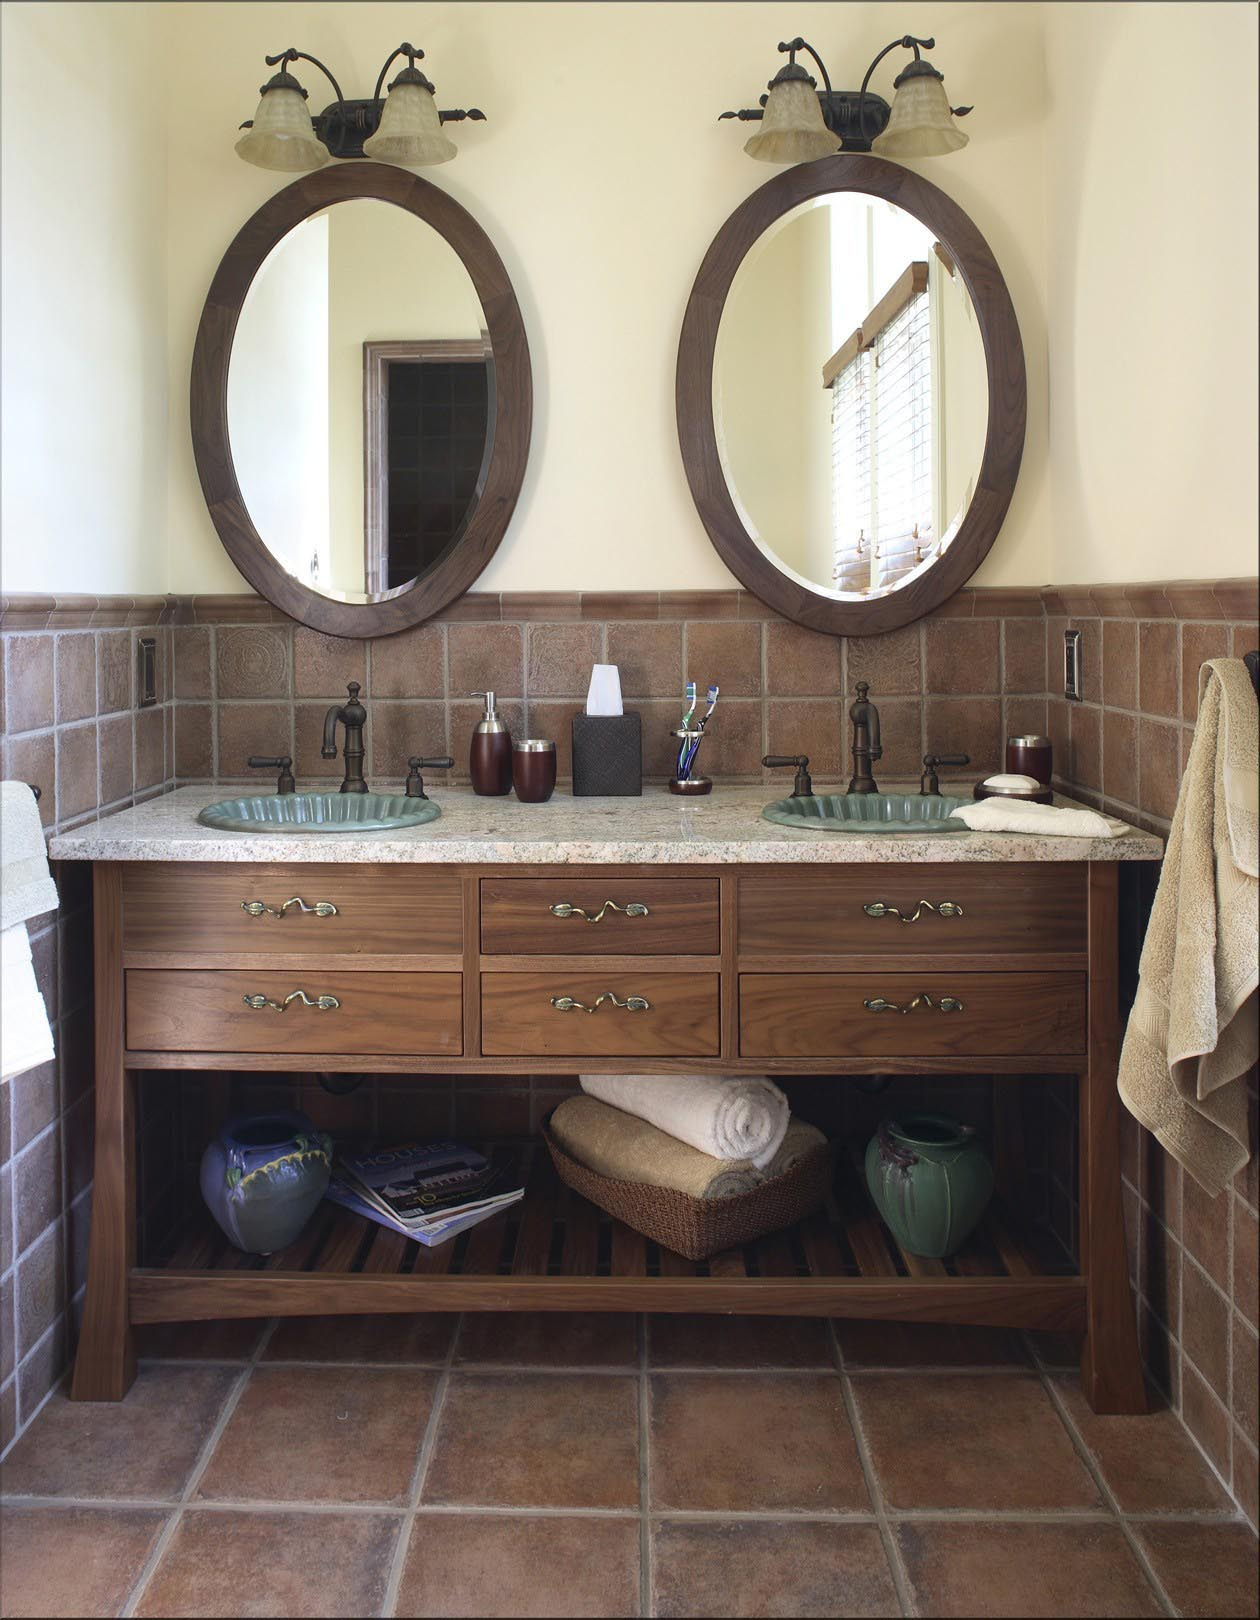 Oval mirrors for bathroom vanities best decor things Oval bathroom mirror cabinet